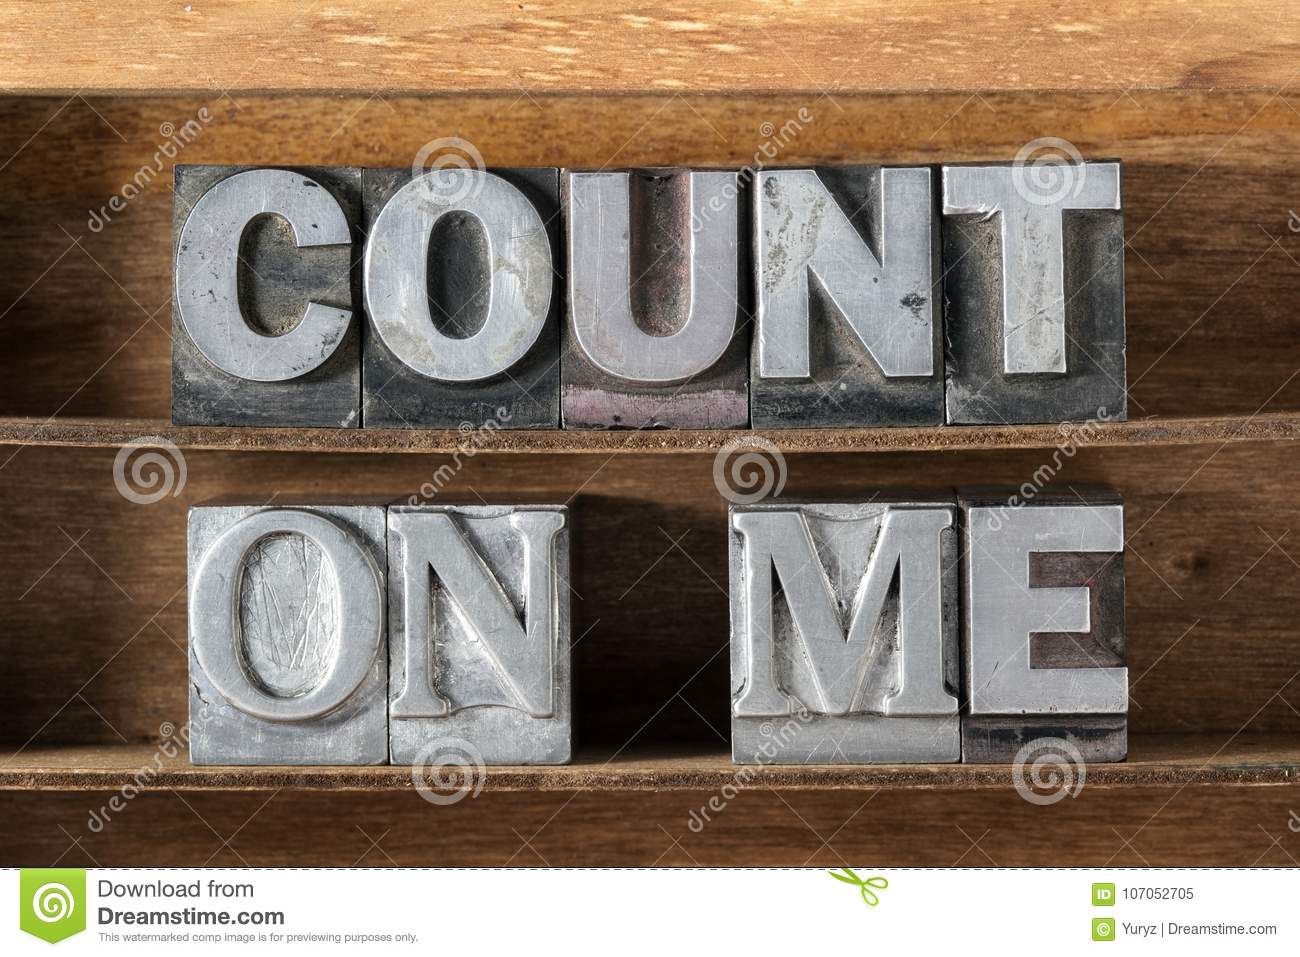 Count on me tray